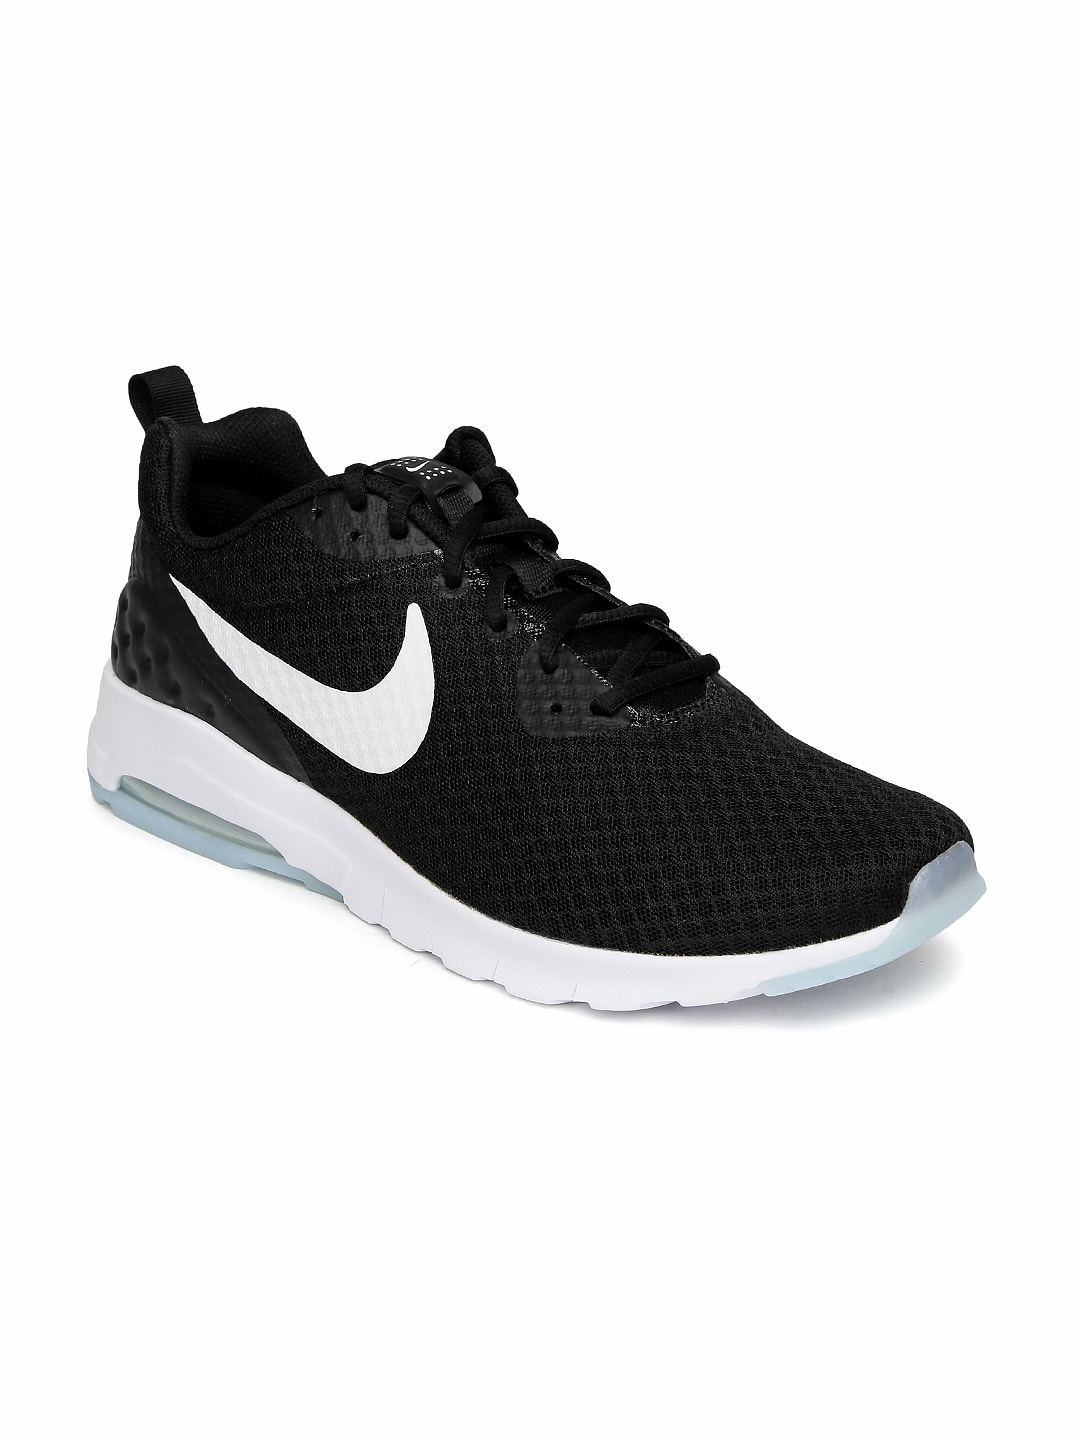 a8f17b271d82 Nike Air Basketball Shoes For Men - Buy Nike Air Basketball Shoes For Men  online in India